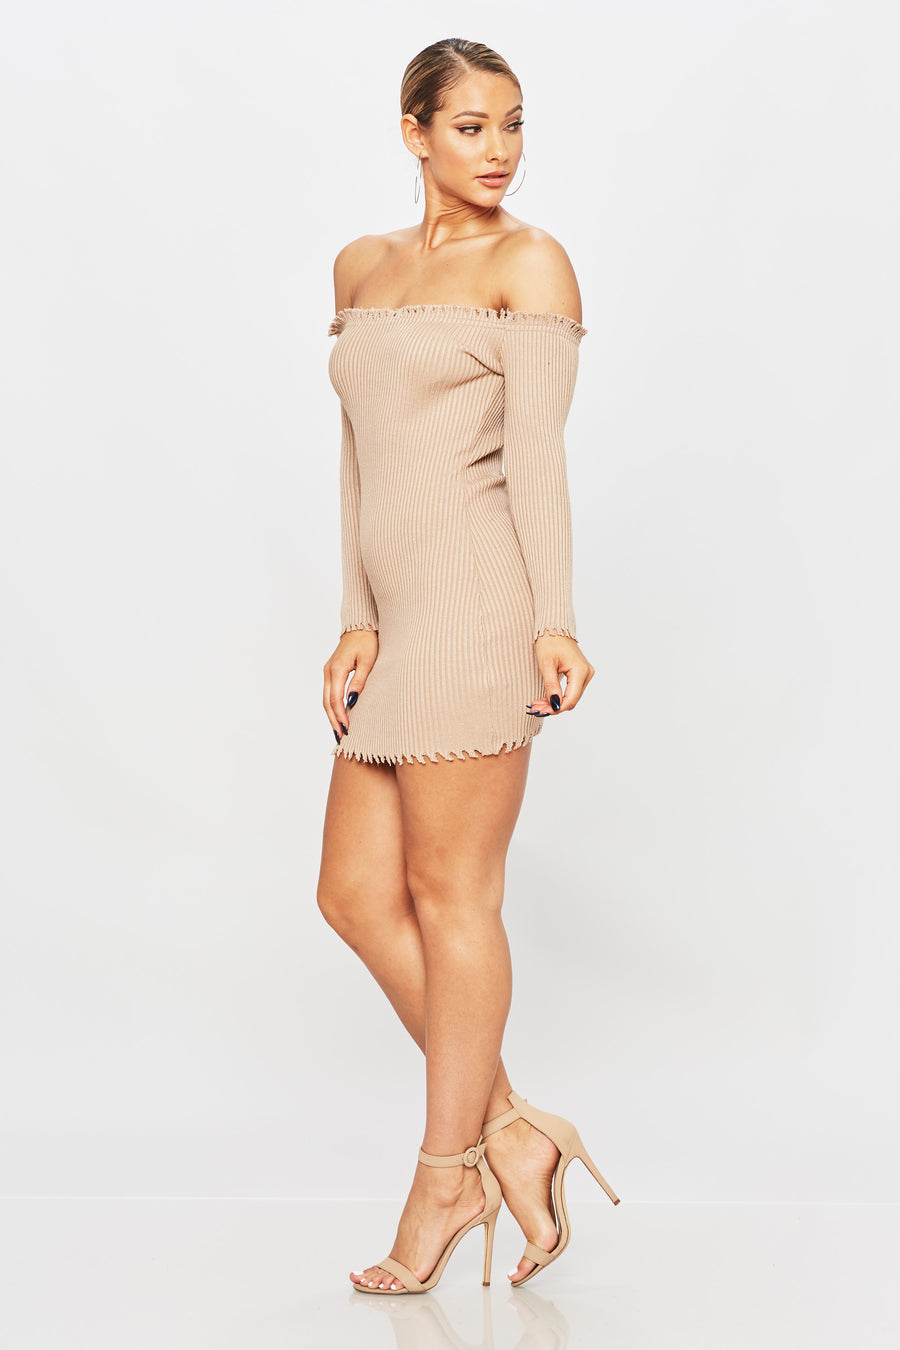 Simple As This Dress - HoneyBum